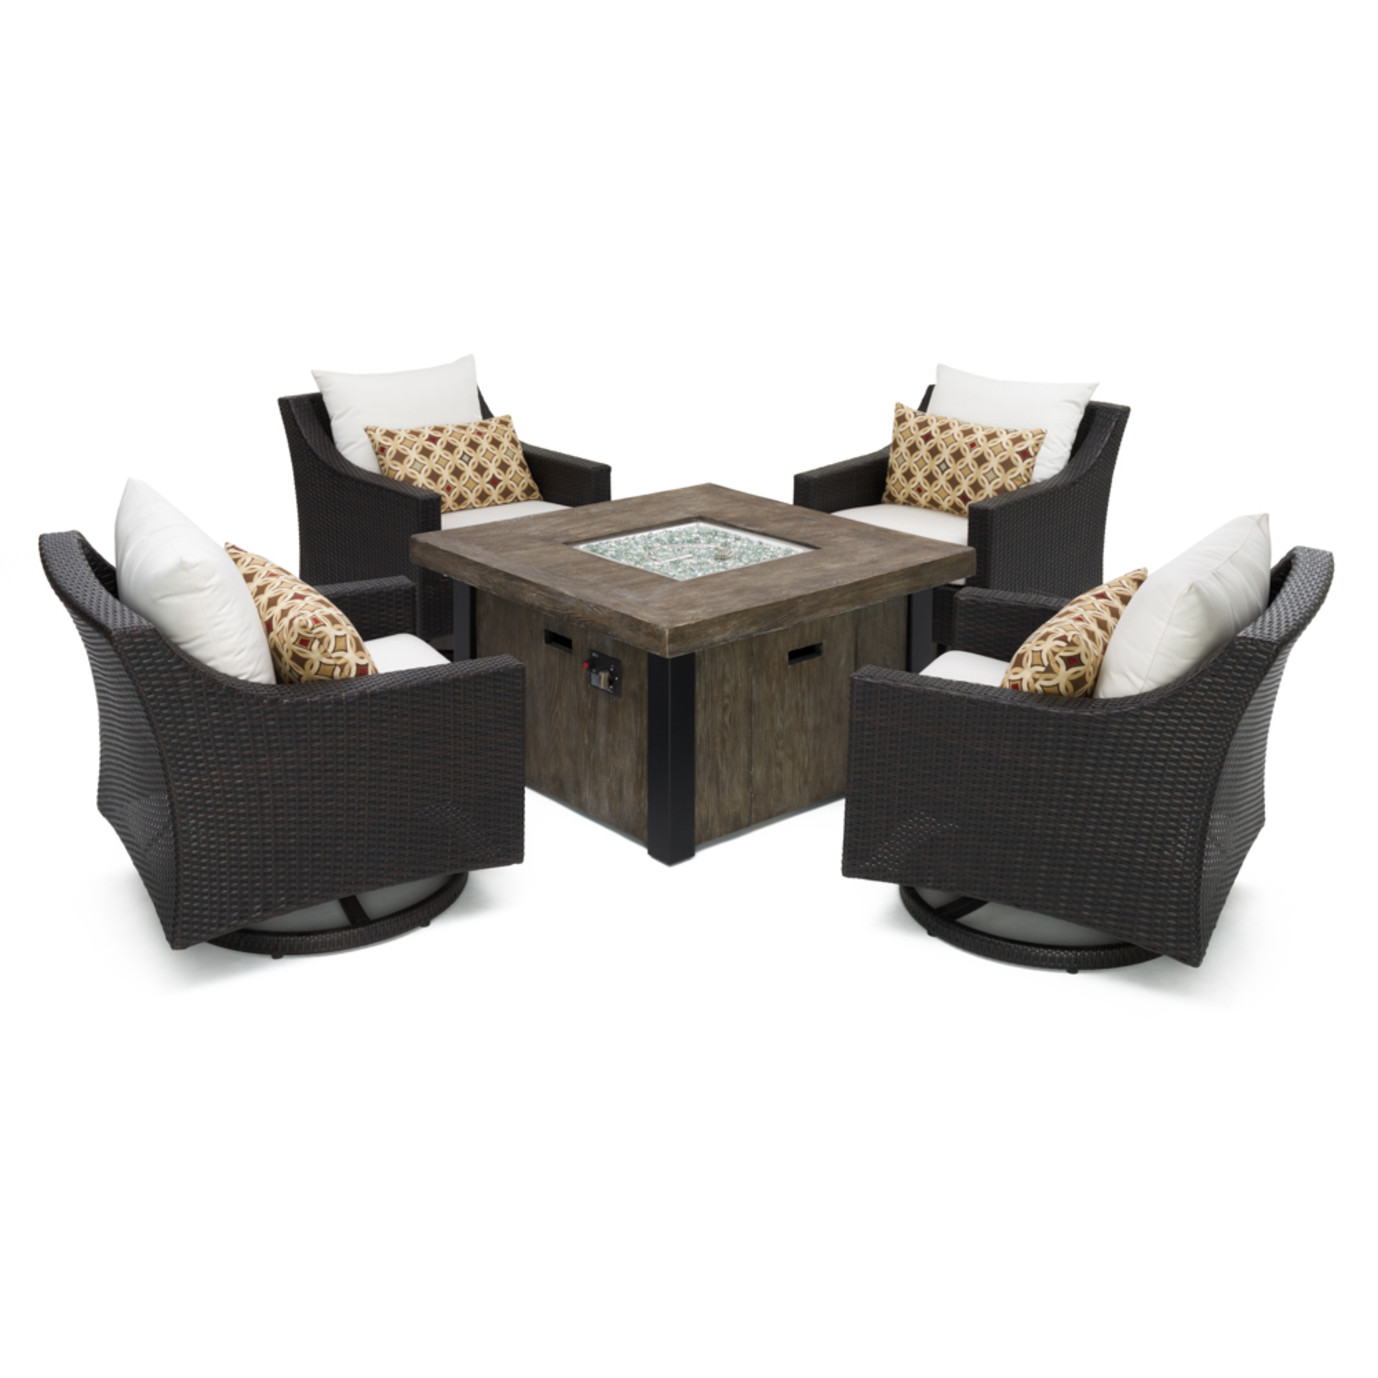 Deco™ 5pc Motion Fire Chat Set - Moroccan Cream